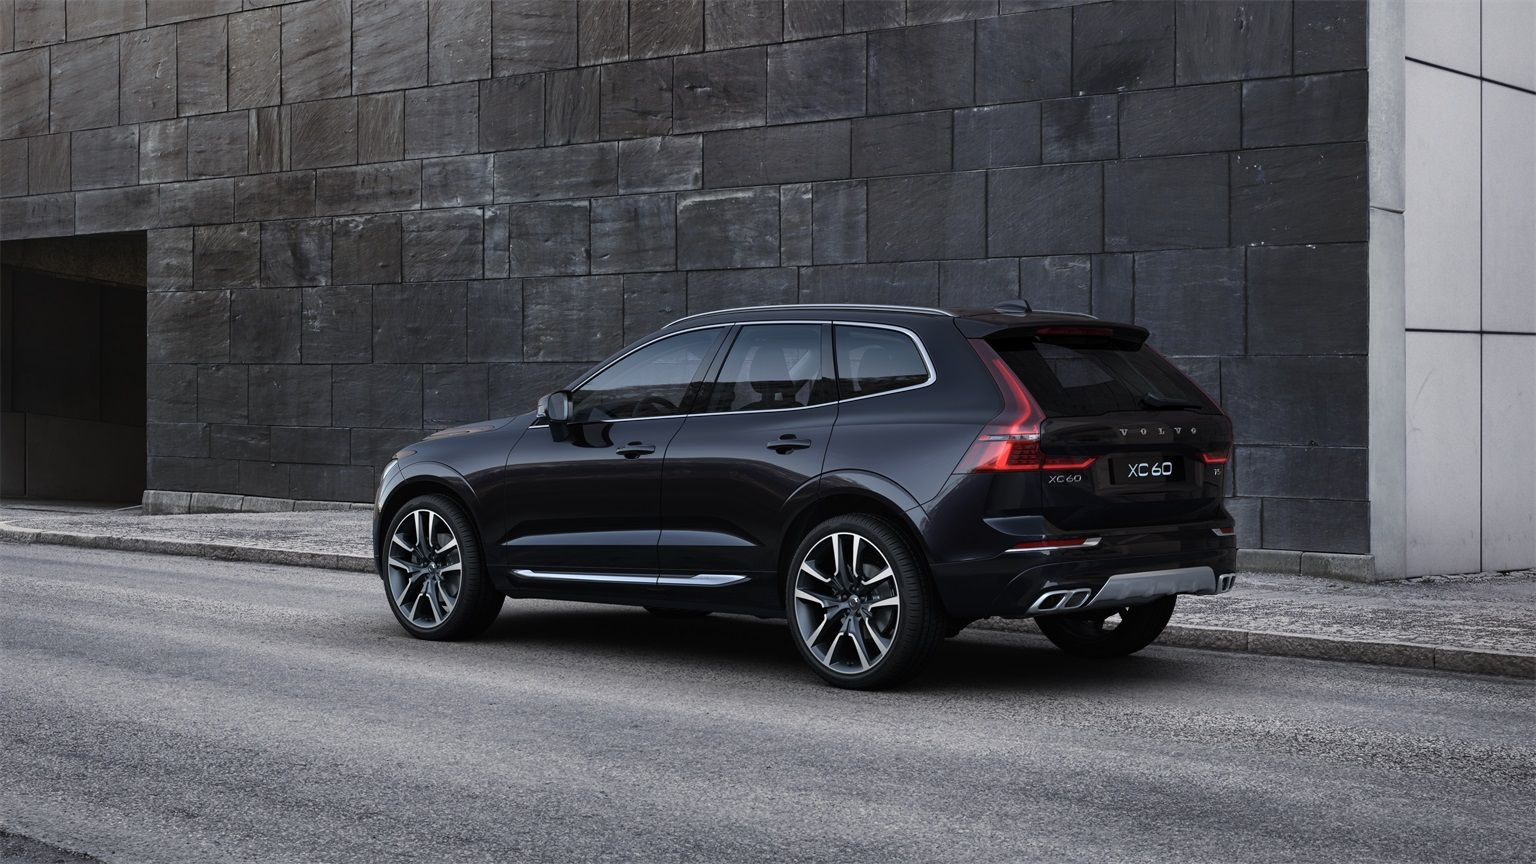 Pin By Aaron Cooper On Volvo Xc60 Volvo Xc60 Volvo Volvo Cars